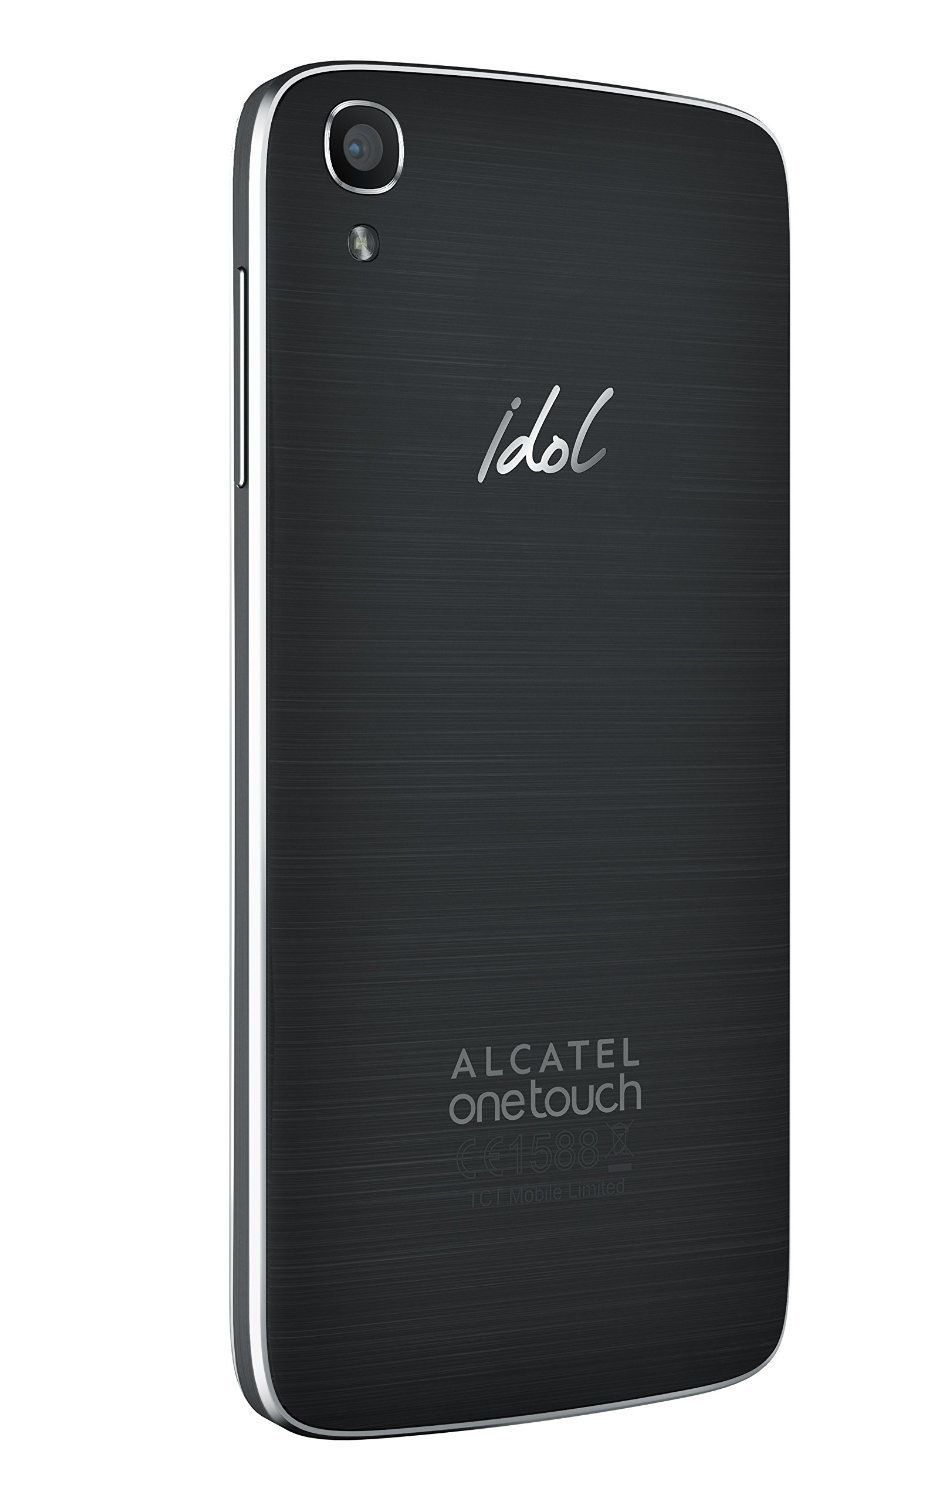 smartphone alcatel idol 3 d bloqu 4g pas cher le blog. Black Bedroom Furniture Sets. Home Design Ideas